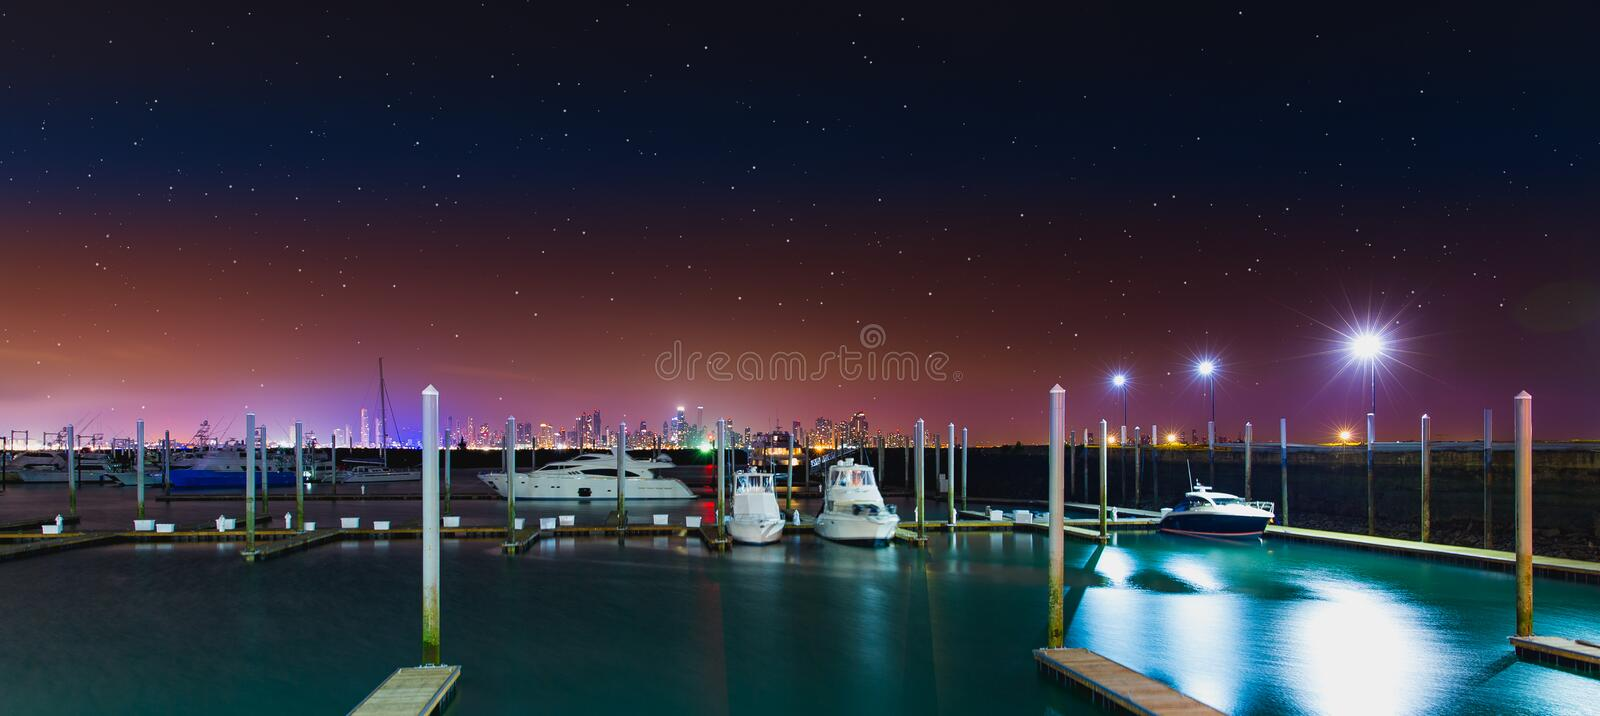 White Yacht at the Dock during Nighttime stock photos